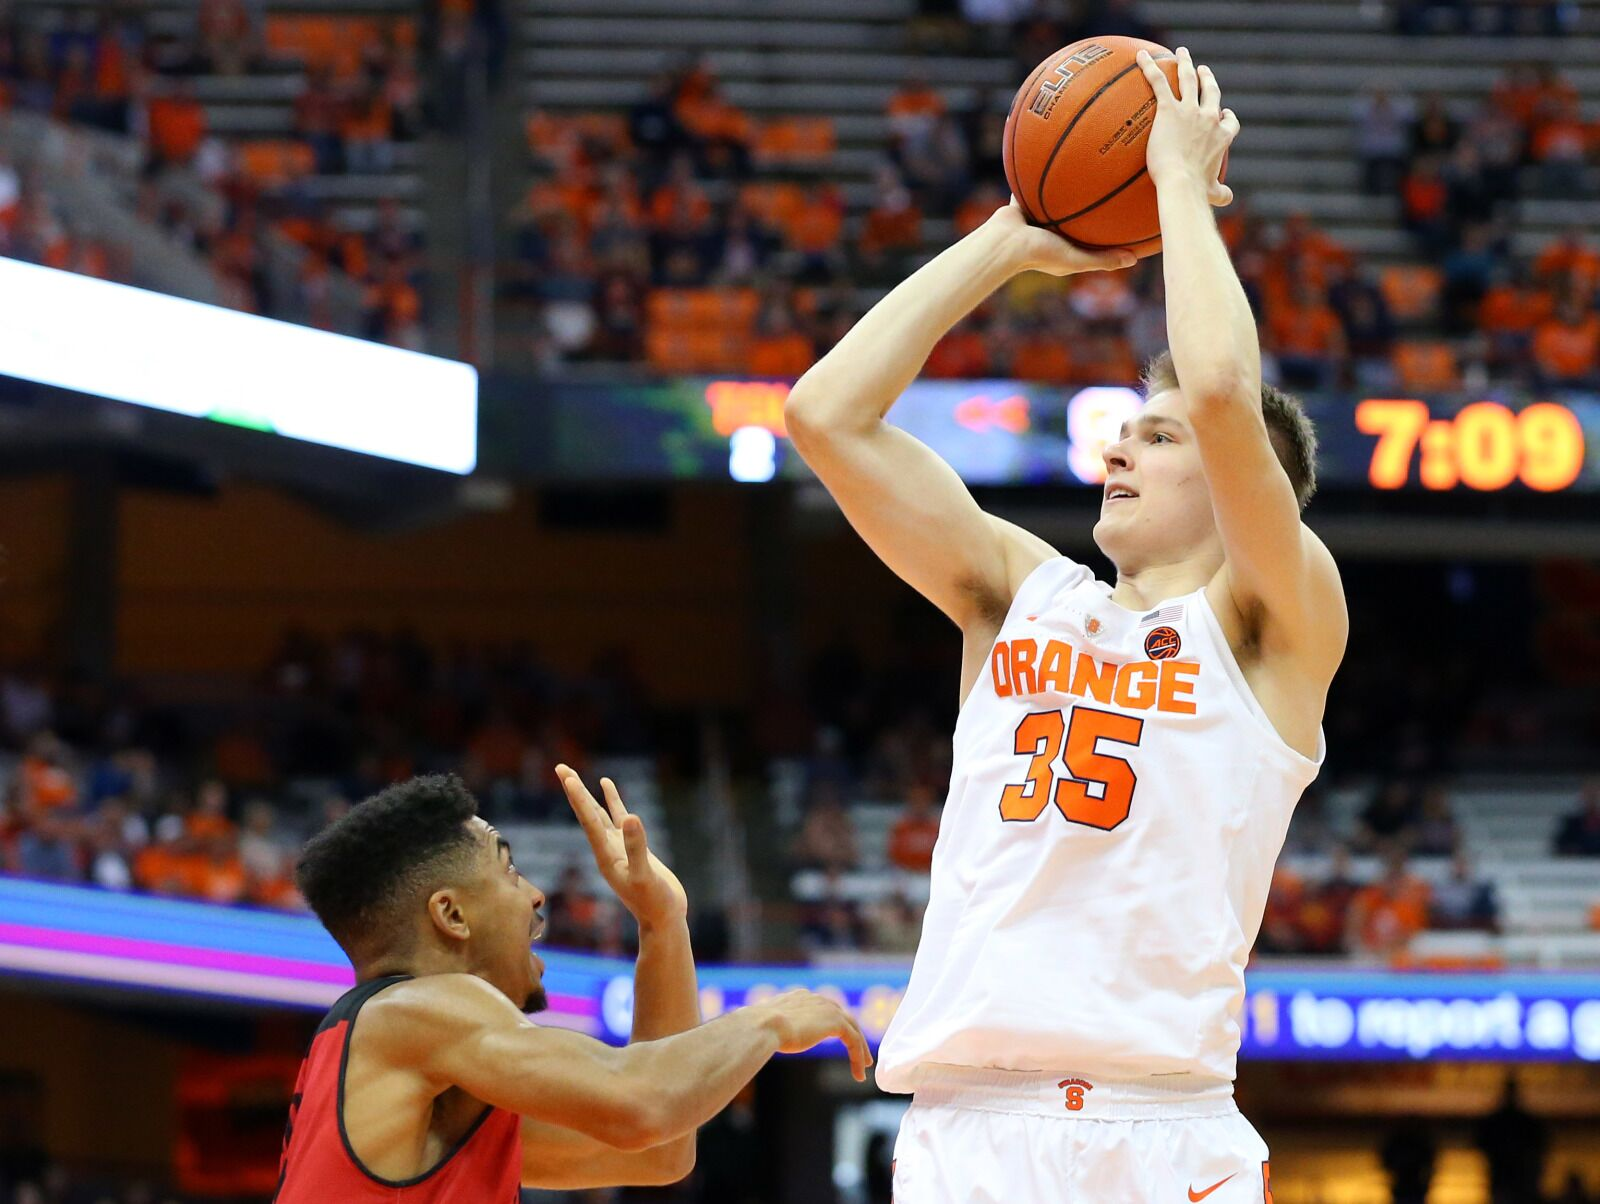 Syracuse basketball has to live and die by the 3-ball in 2019